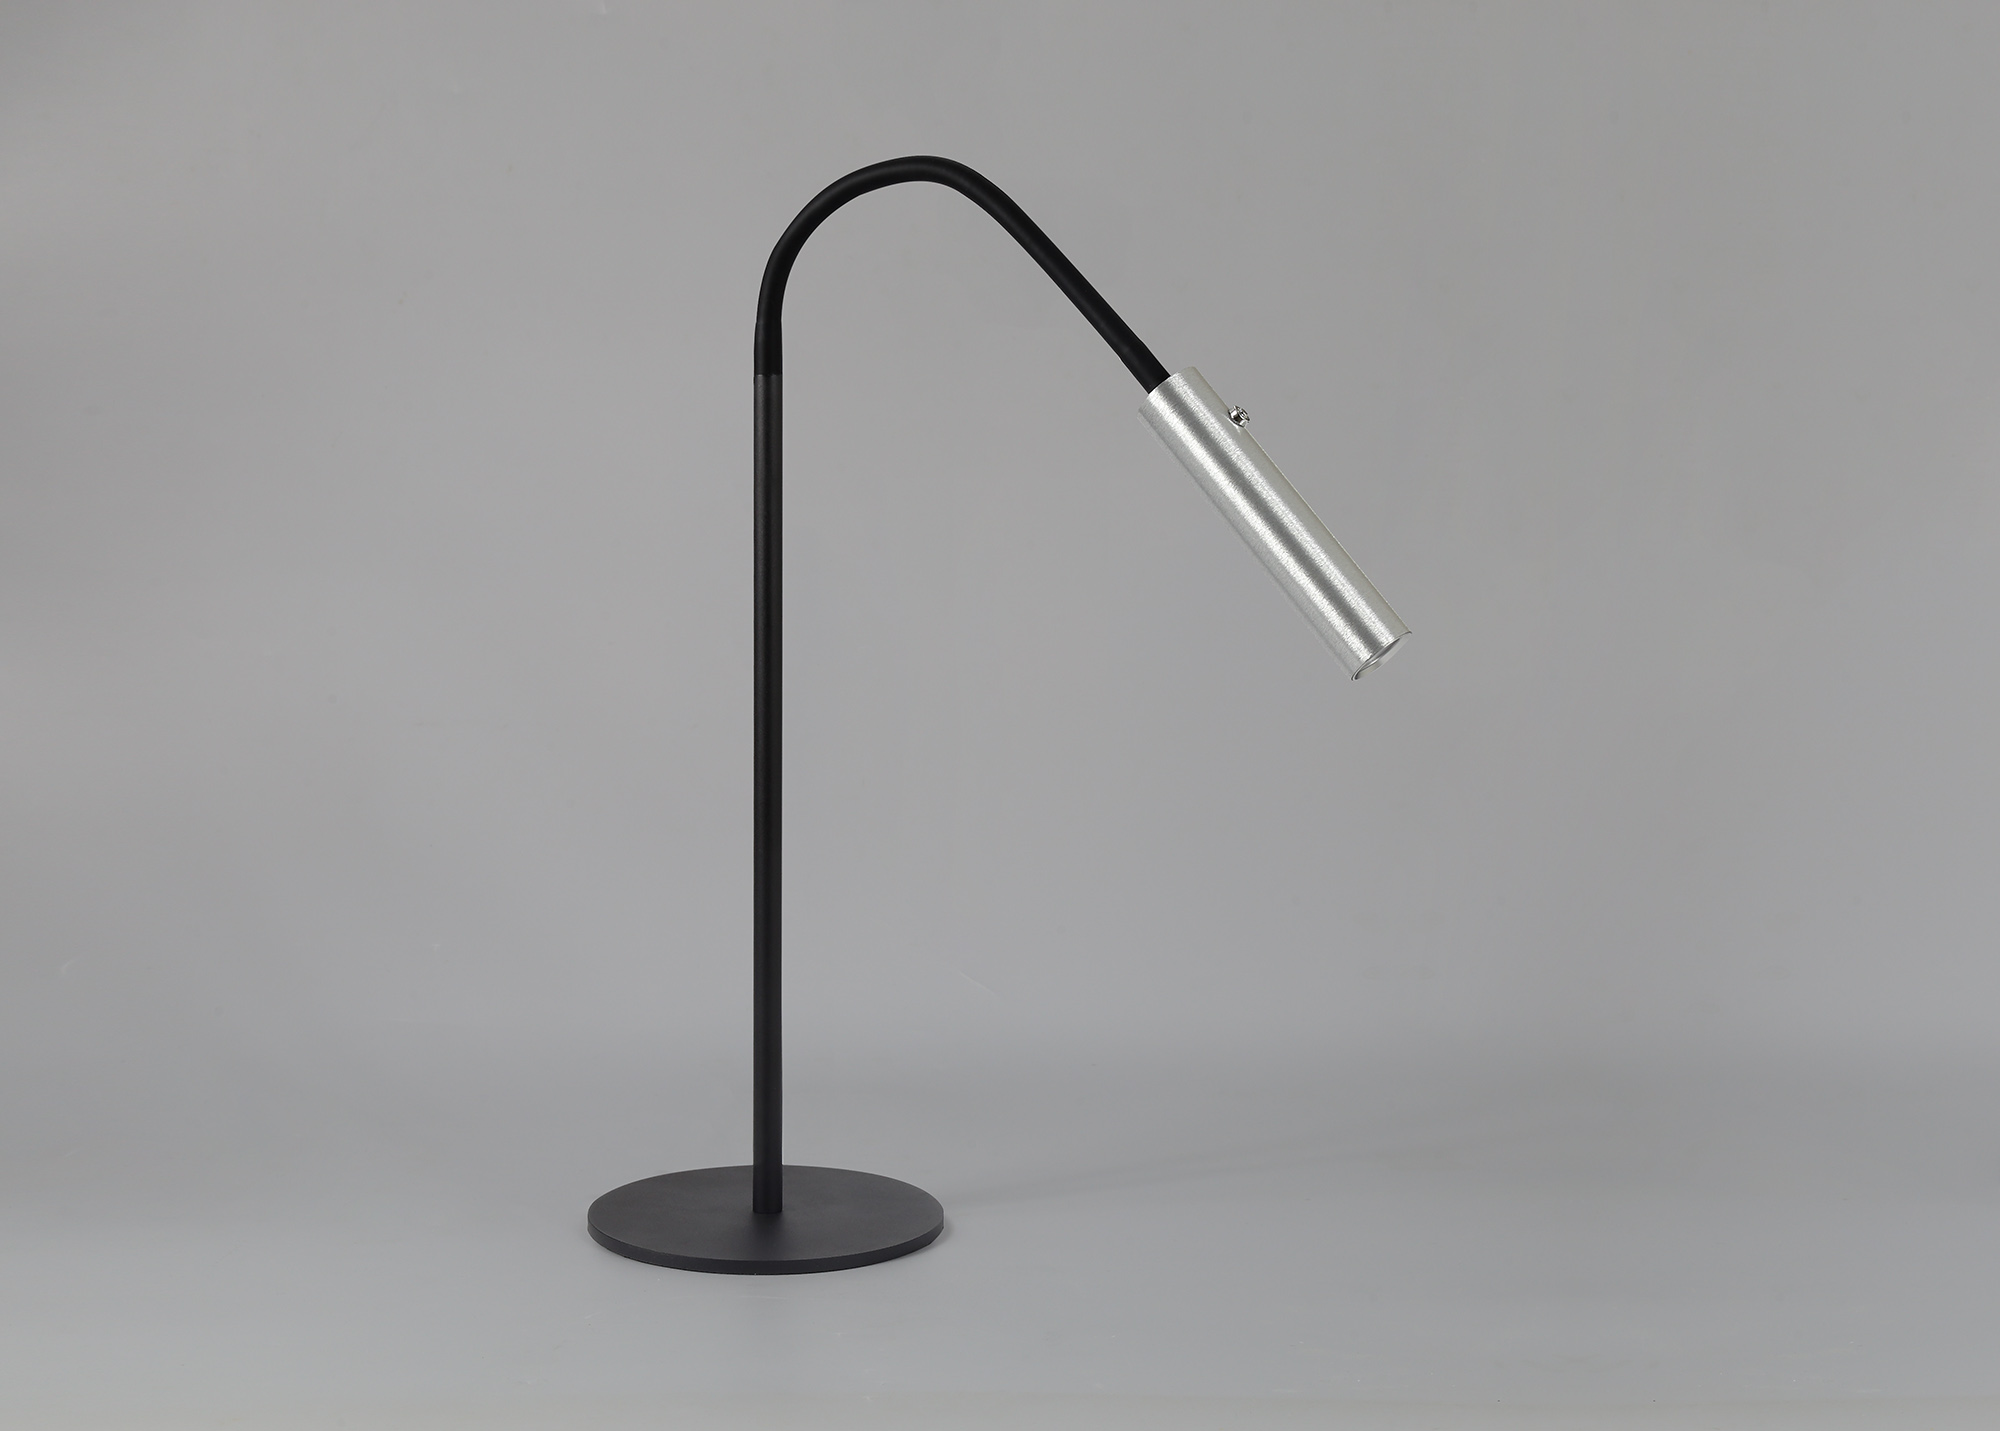 Table Lamp, 1 Light Adjustable Switched, 1 x 7W LED, 3000K, 436lm, 3yrs Warranty